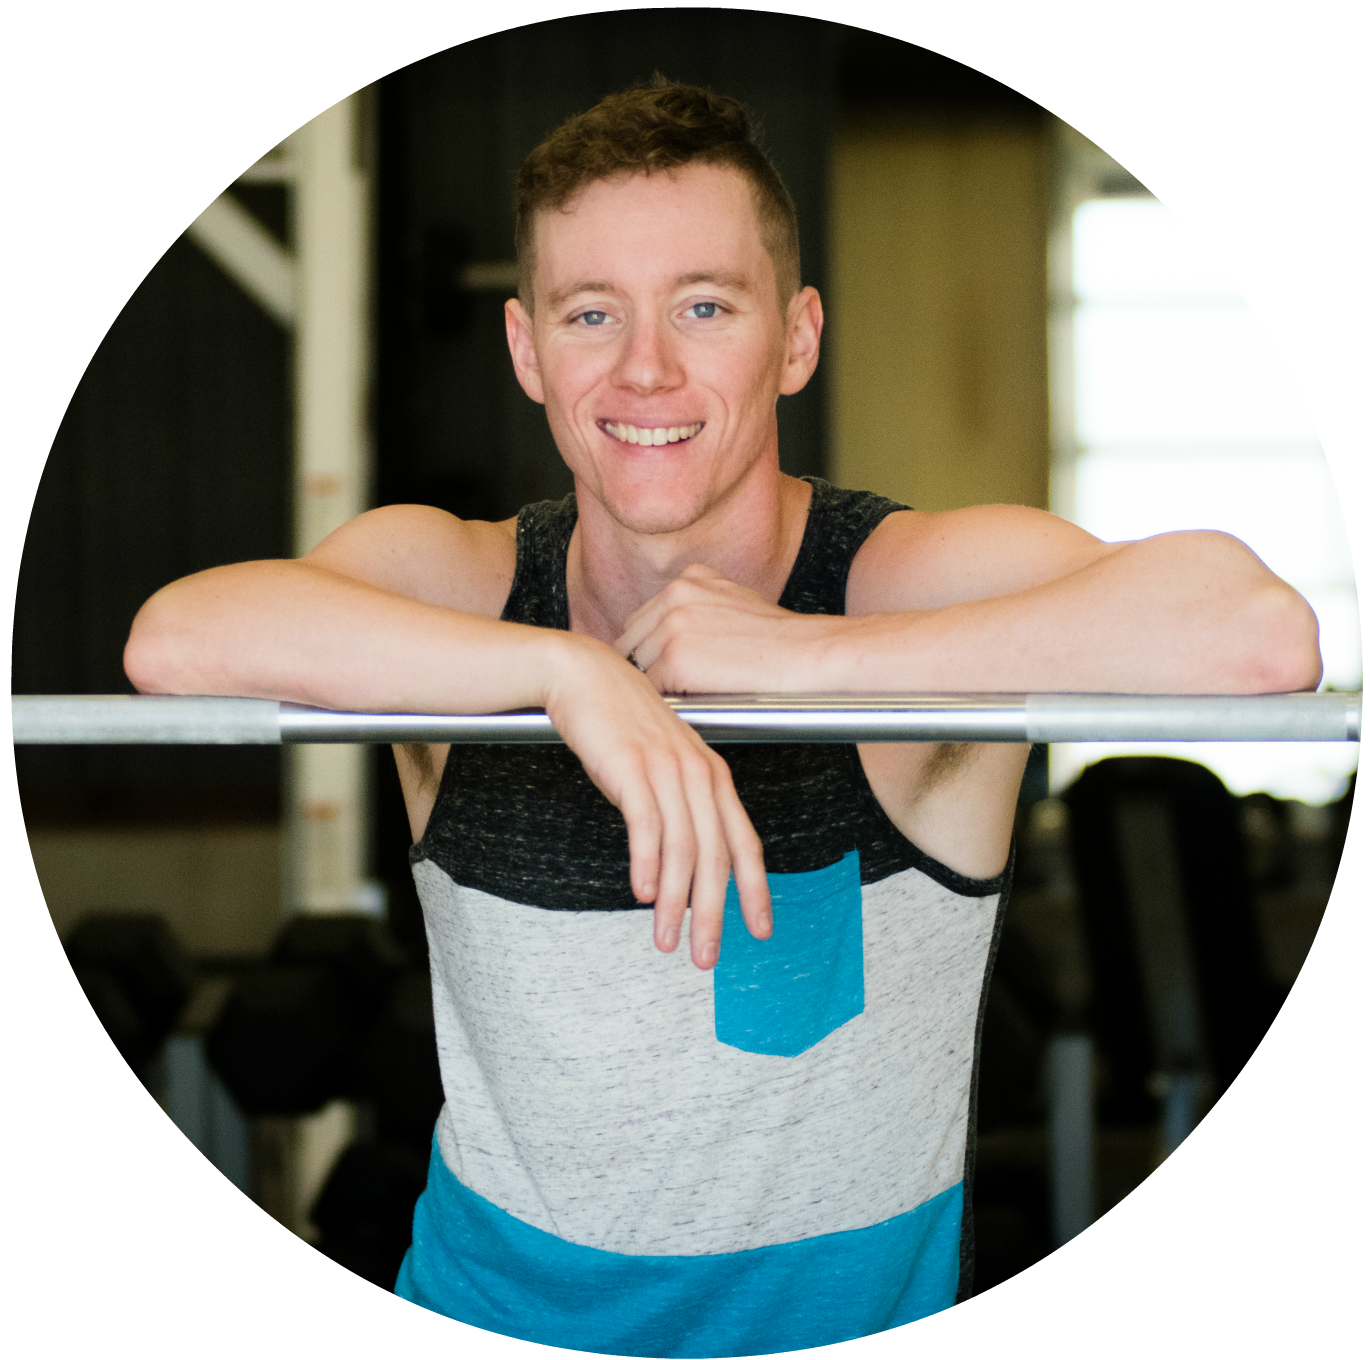 Derek Colvin kitchener personal trainer contact page